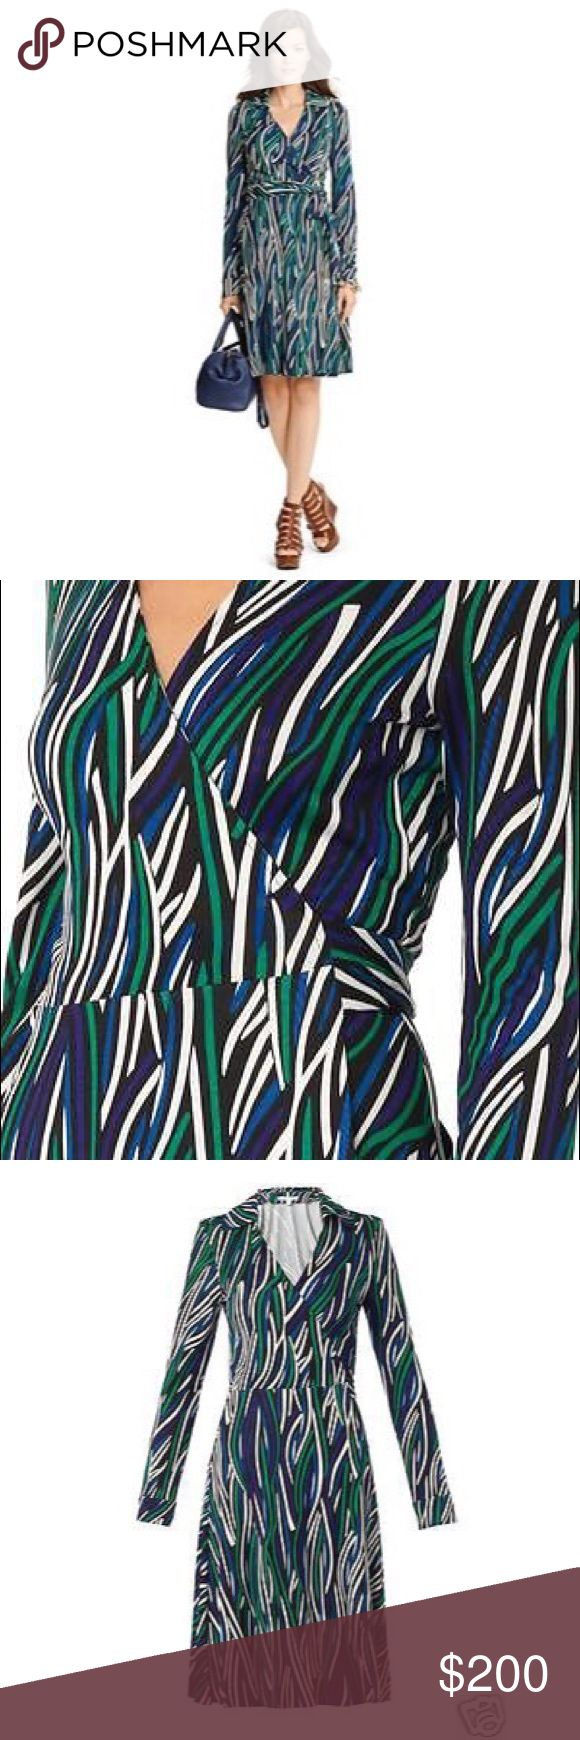 "More Forties Inspired Flair: DVF T-72 Classic Wrap Dress! Bf T-72 In ""cornfields"" Print"